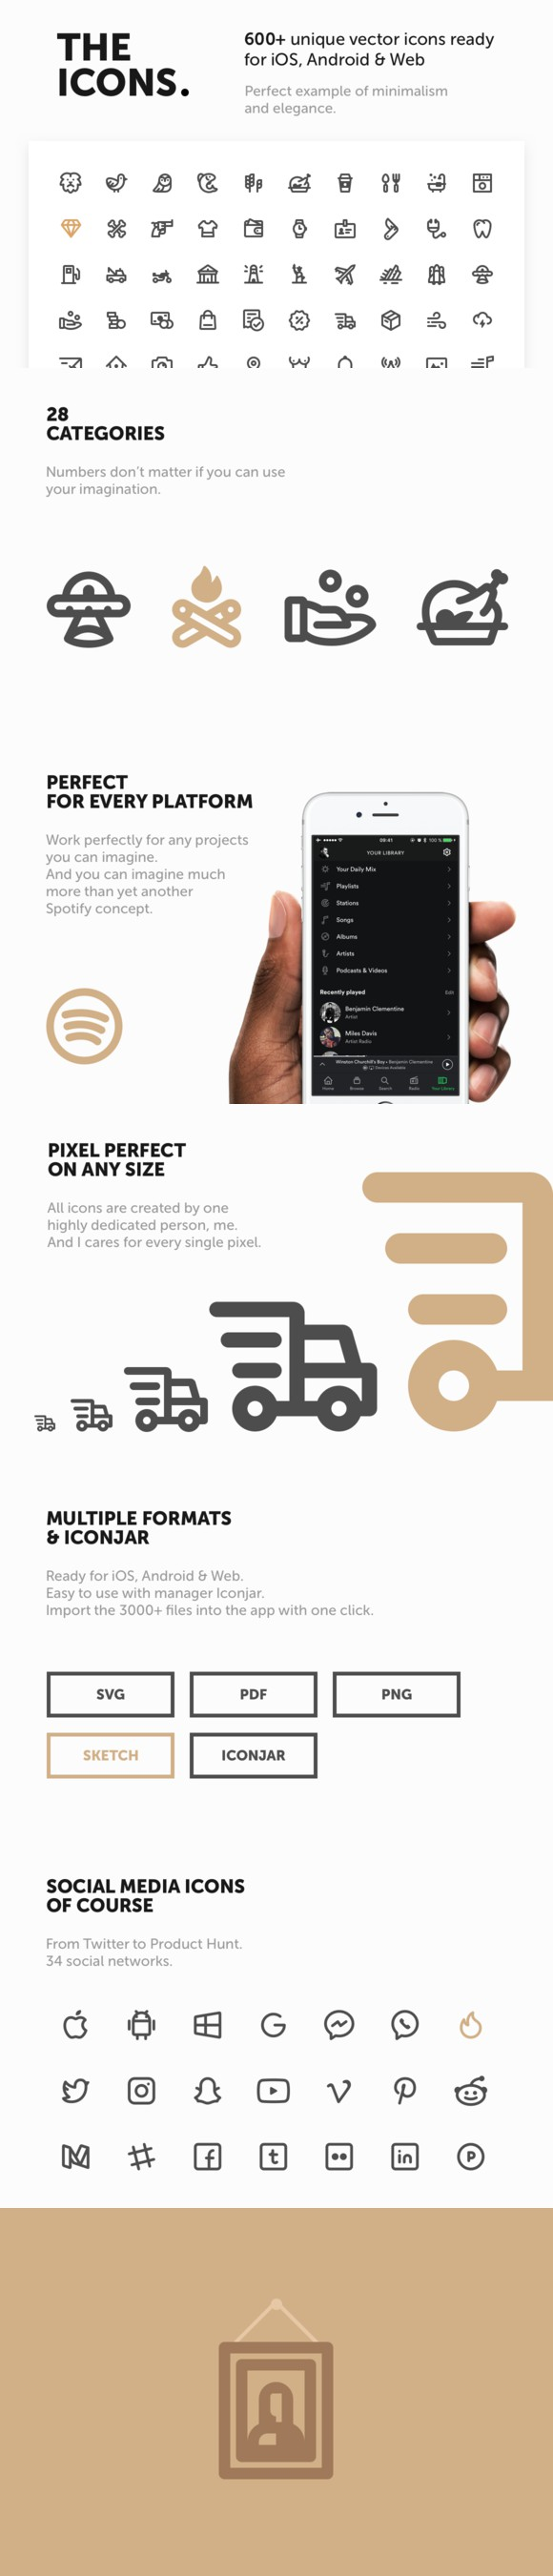 700+ Premium Vector Icons Vector icons, Icon, Android web